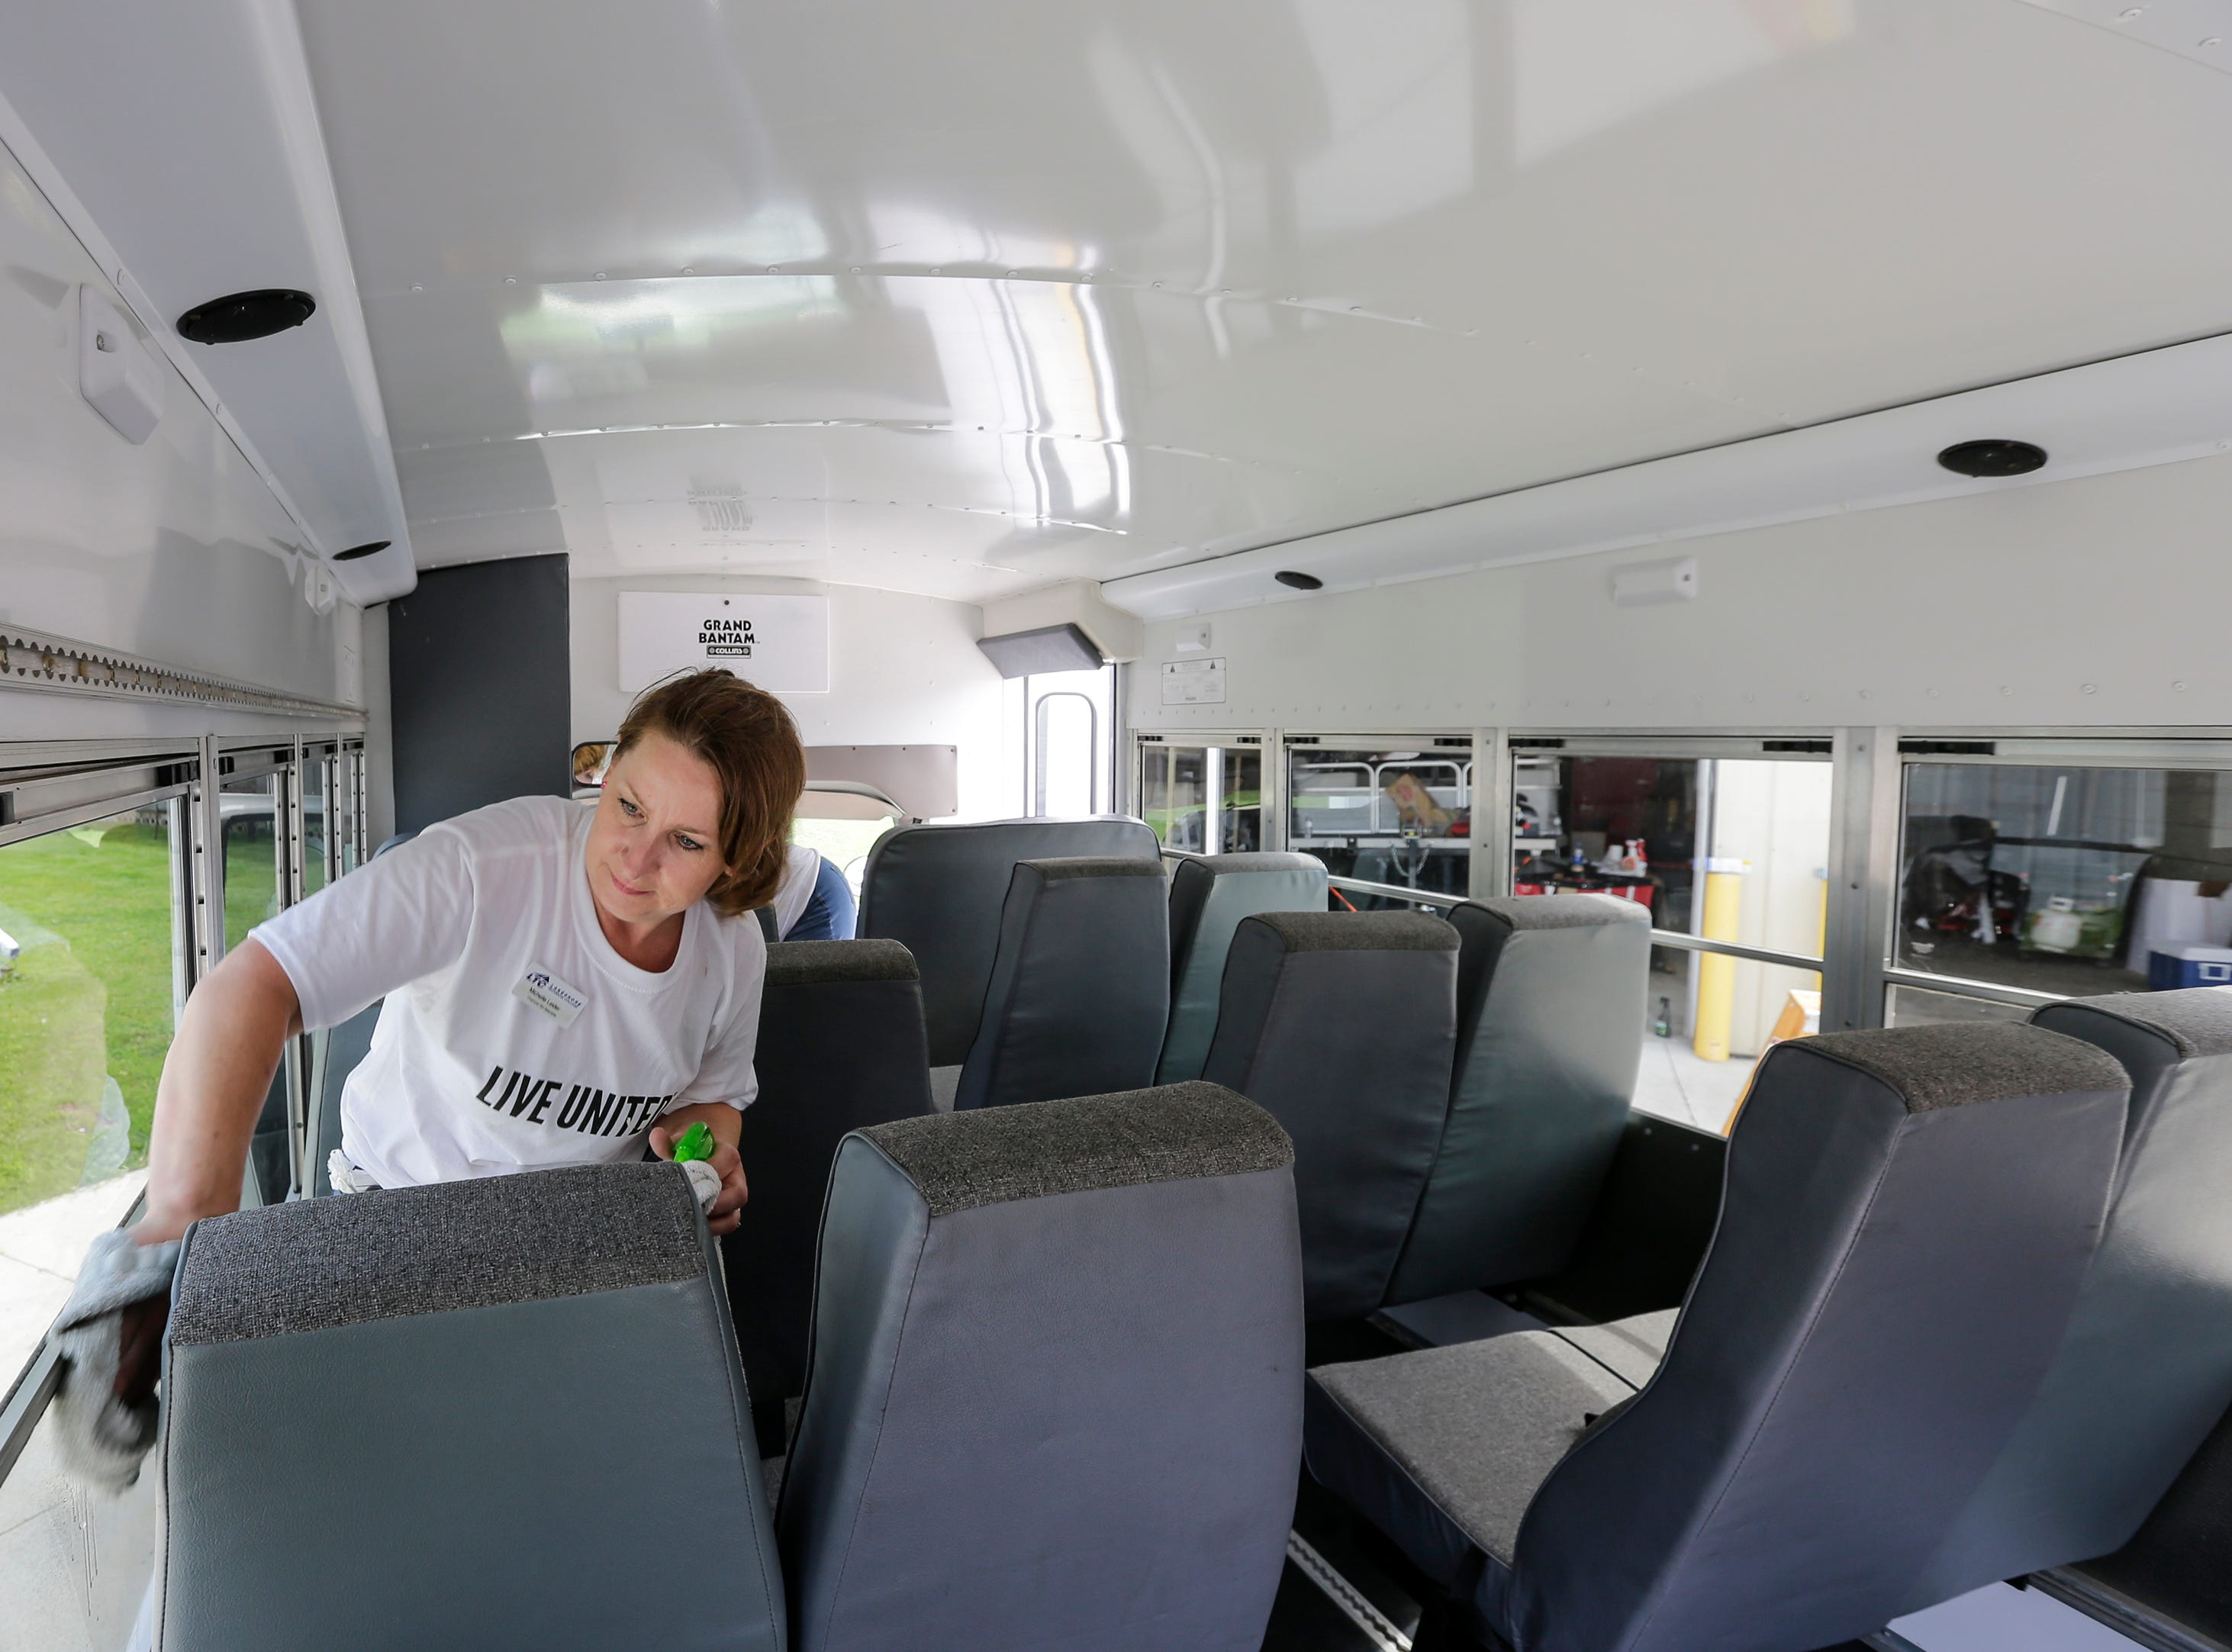 Michelle Leider of Lakeshore Technical College cleans windows on the Salvation Army bus during the United Way's Day of Action at the Salvation Army Thursday, June 21, 2018, in Manitowoc, Wis. Volunteers spread out across the community to help non-profits and those in need as part of United Way's Day of Action. Josh Clark/USA TODAY NETWORK-Wisconsin